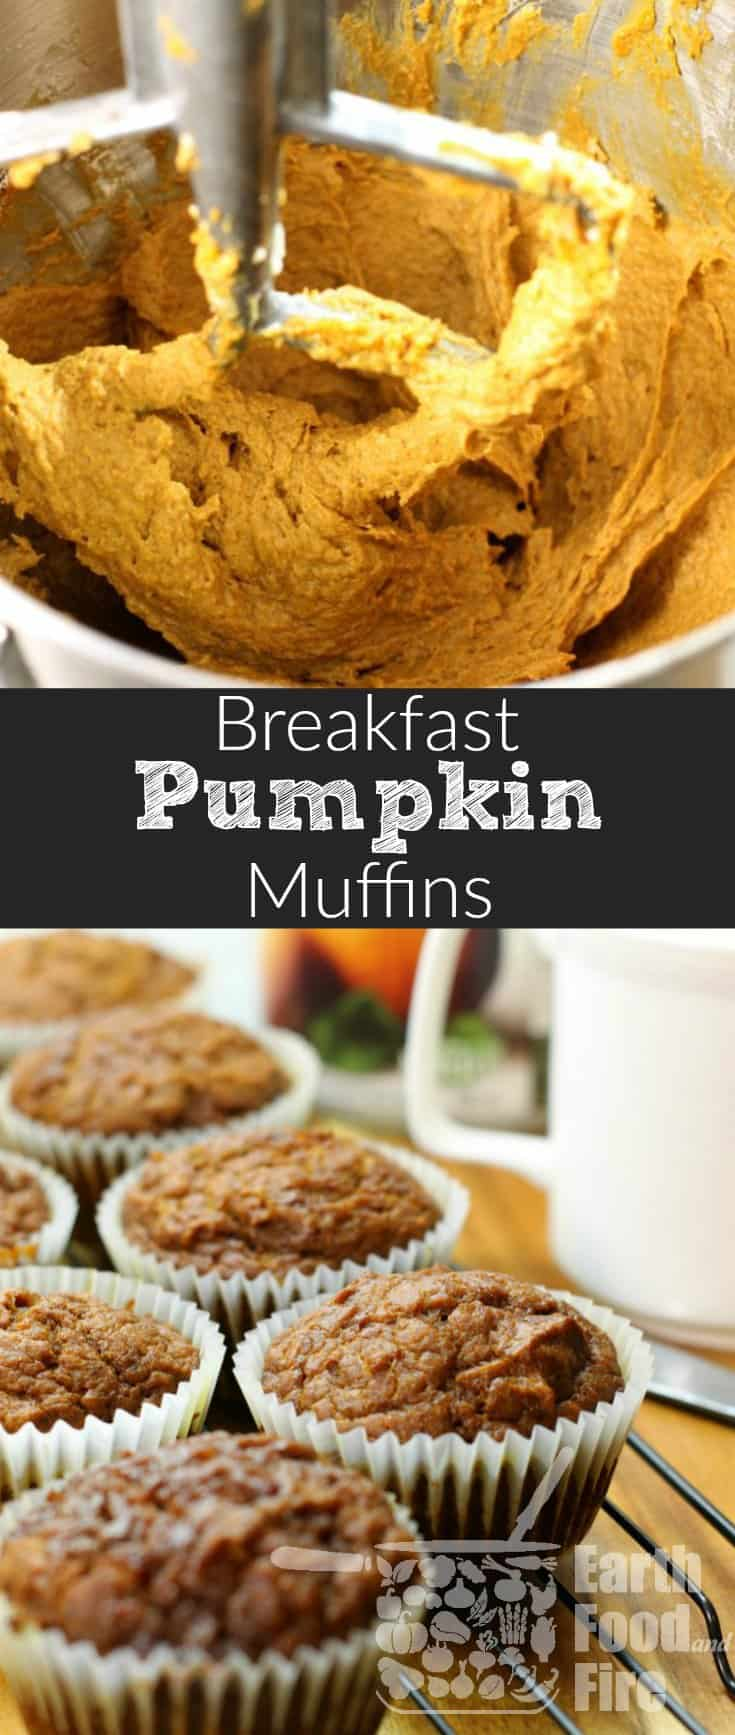 A deliciously moist, and easy to make pumpkin breakfast muffin. A great way to start your fall day, and an easy way to sneak vegetables into your kids breakfast! #pumpkin #muffin #breakfast #fall #baking